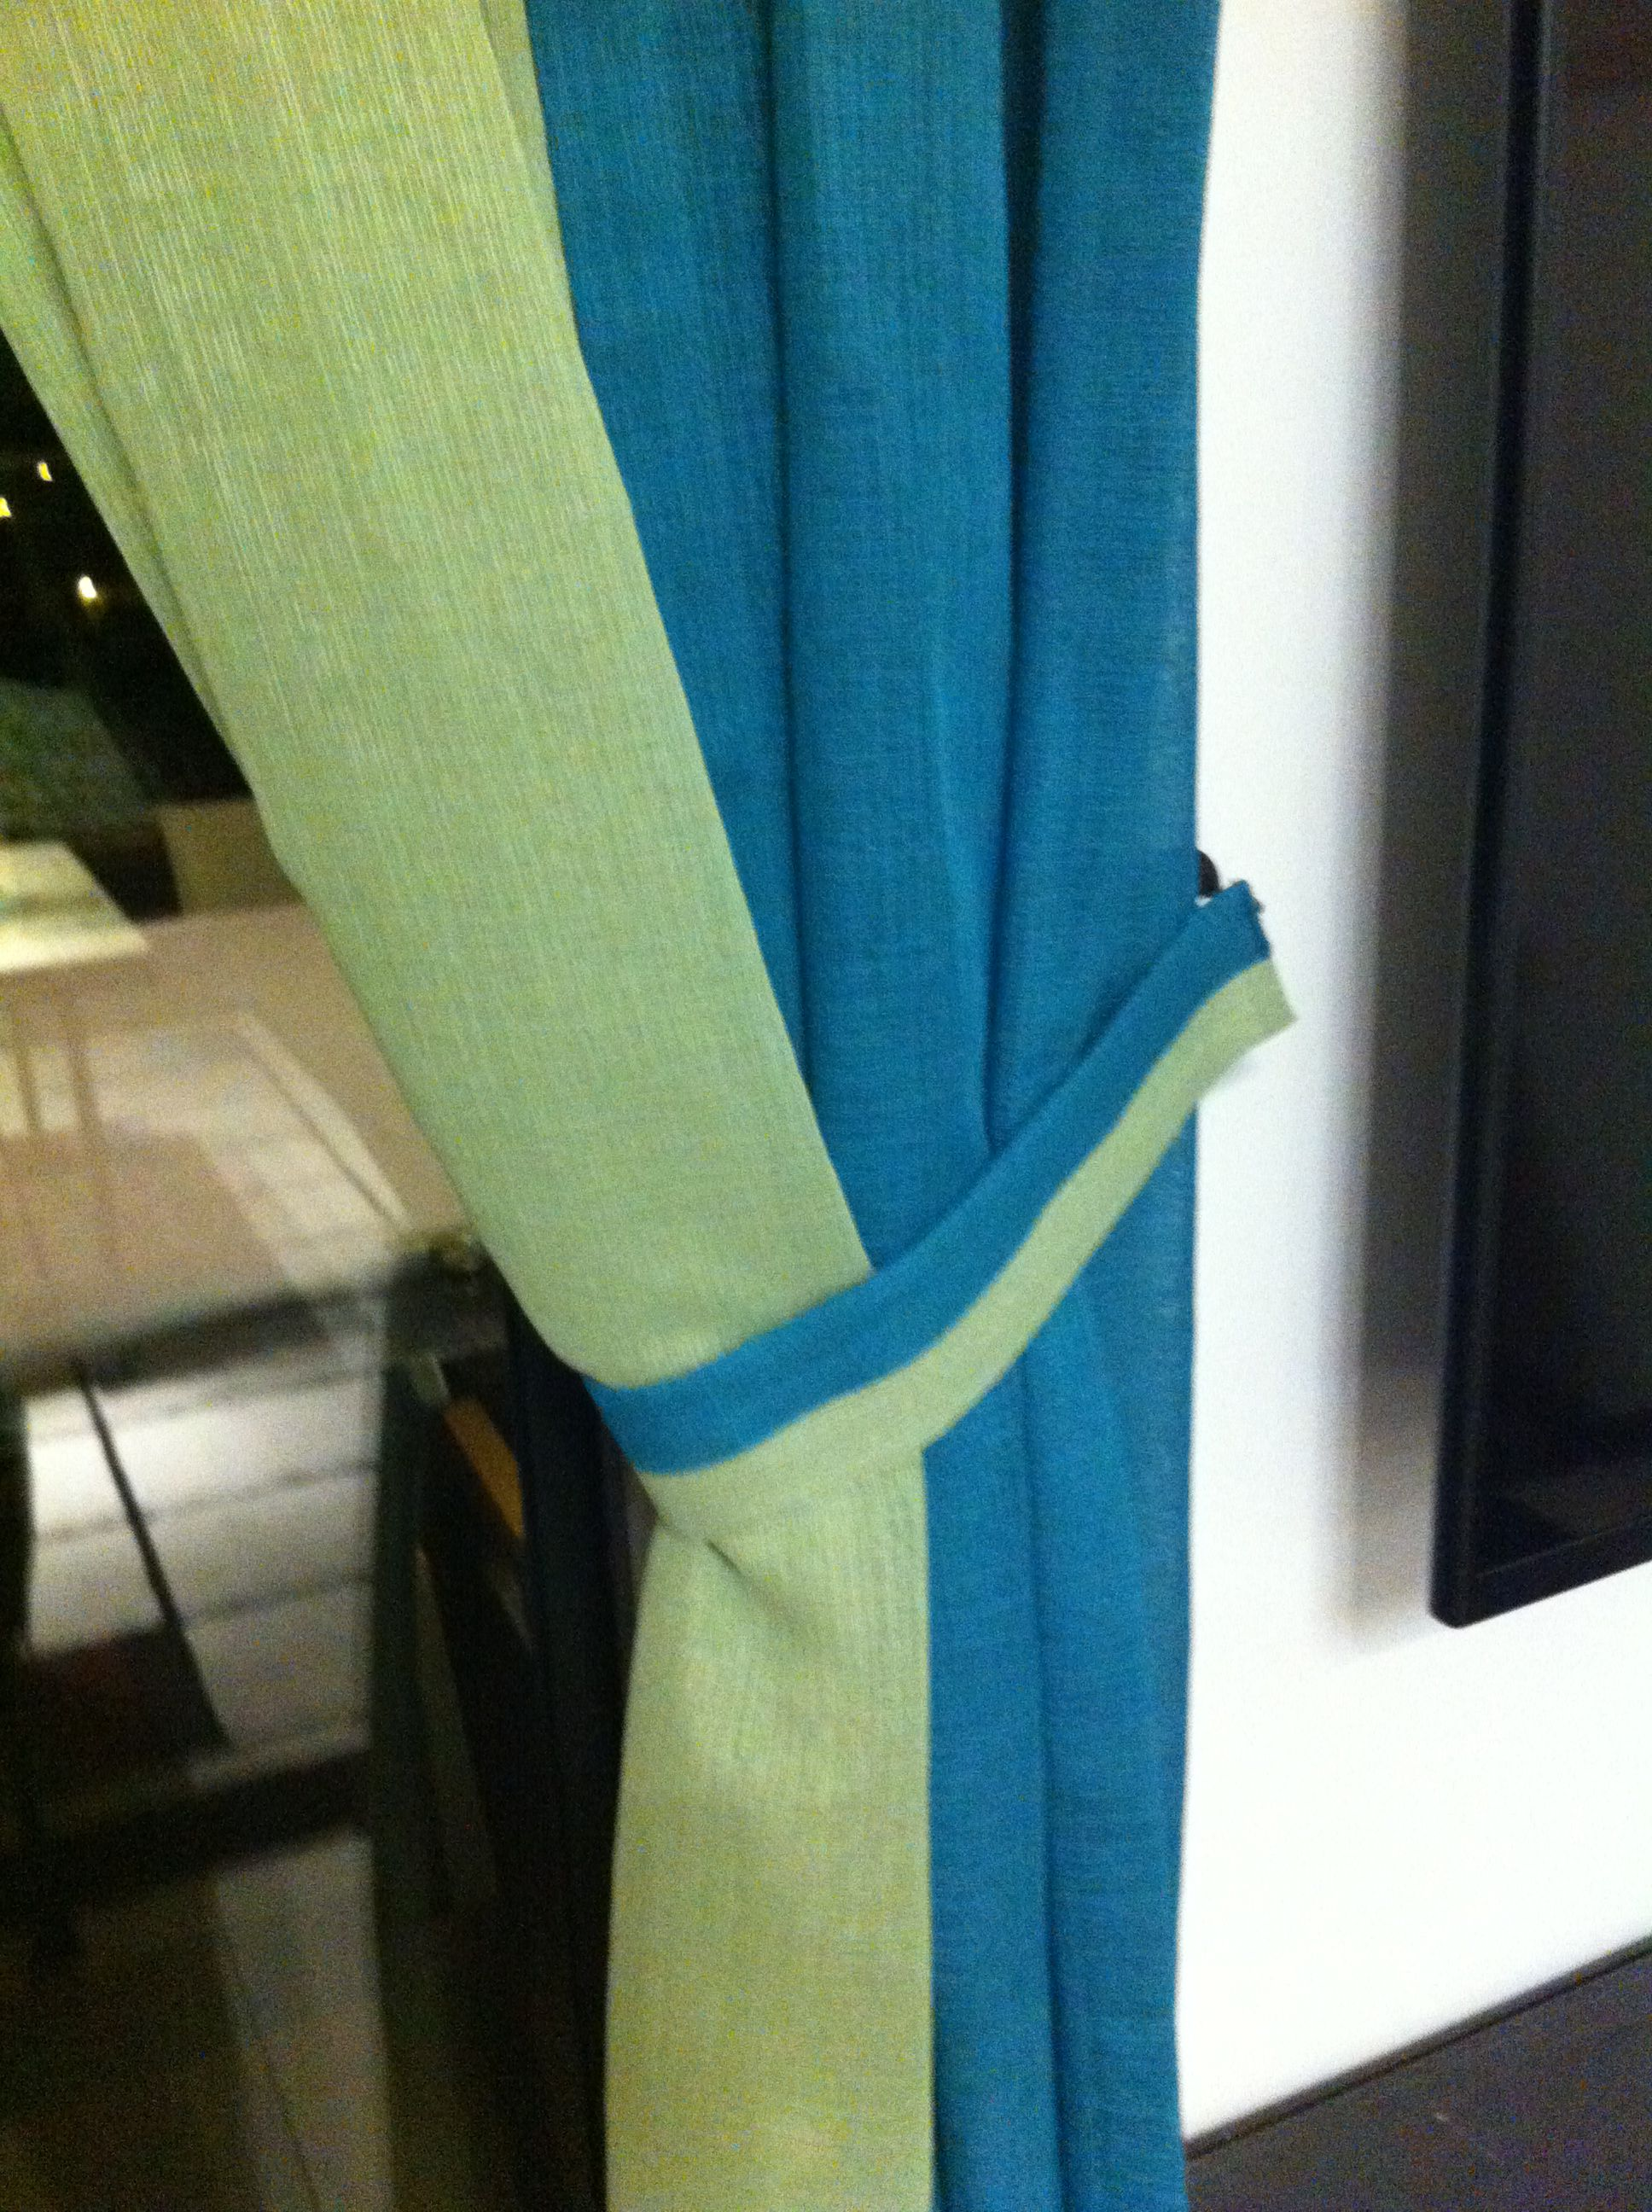 Curtain and tie-back in 2 colors